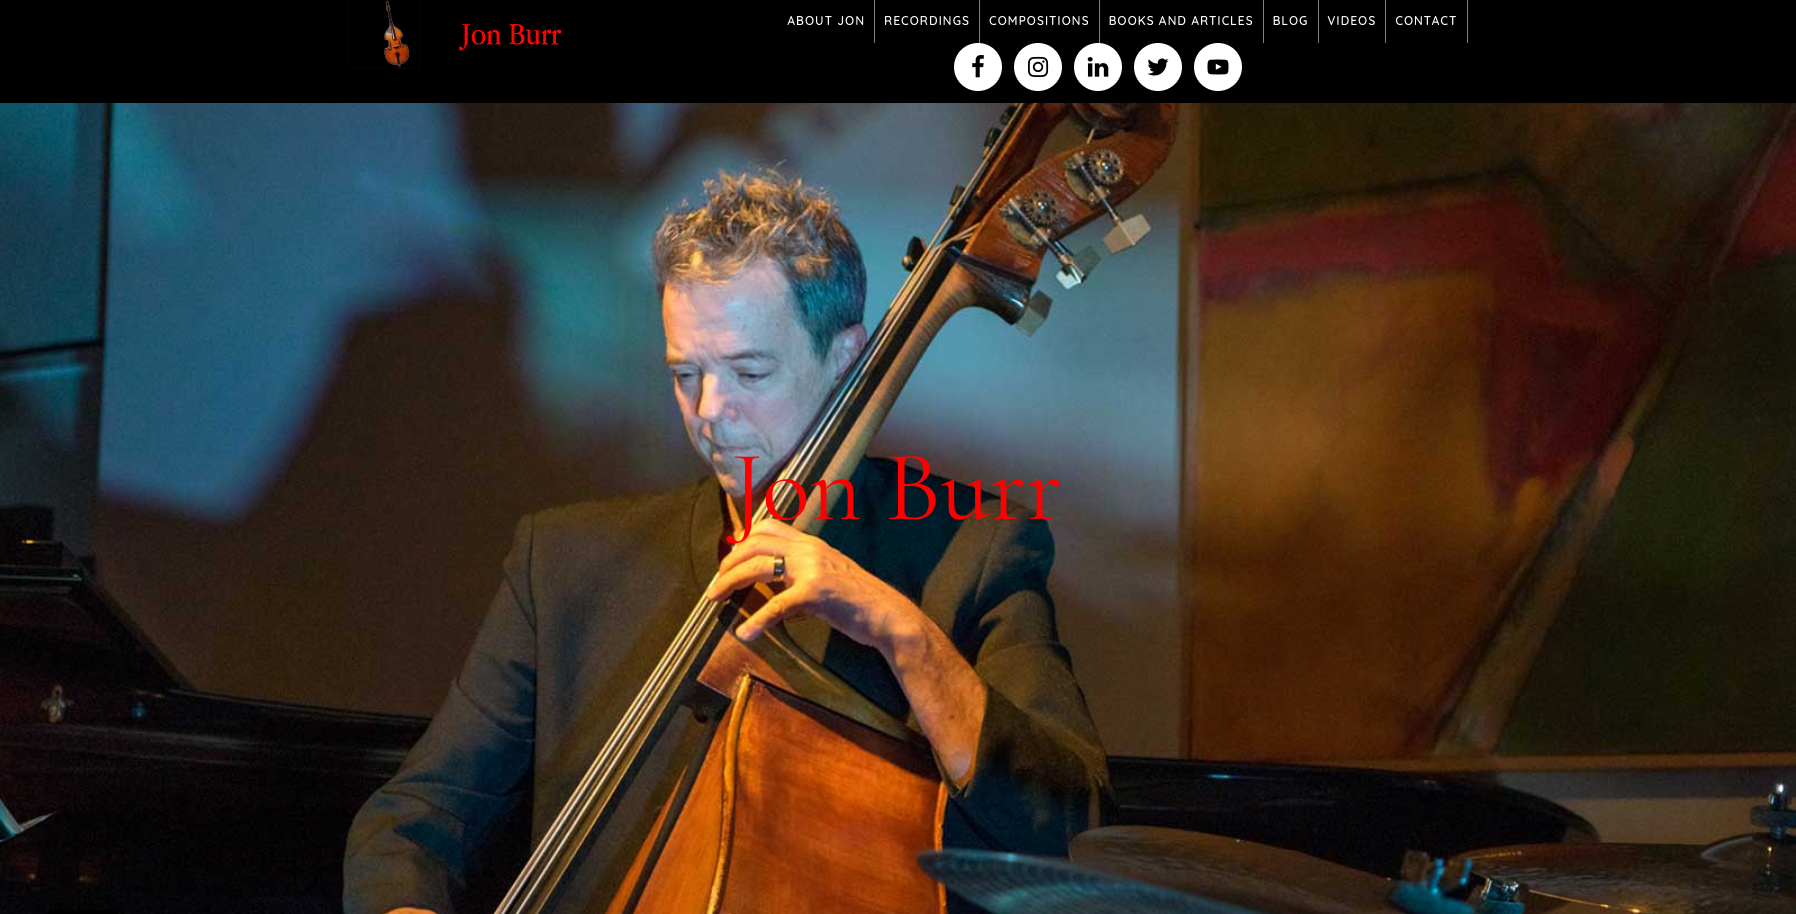 Jon Burr's Website